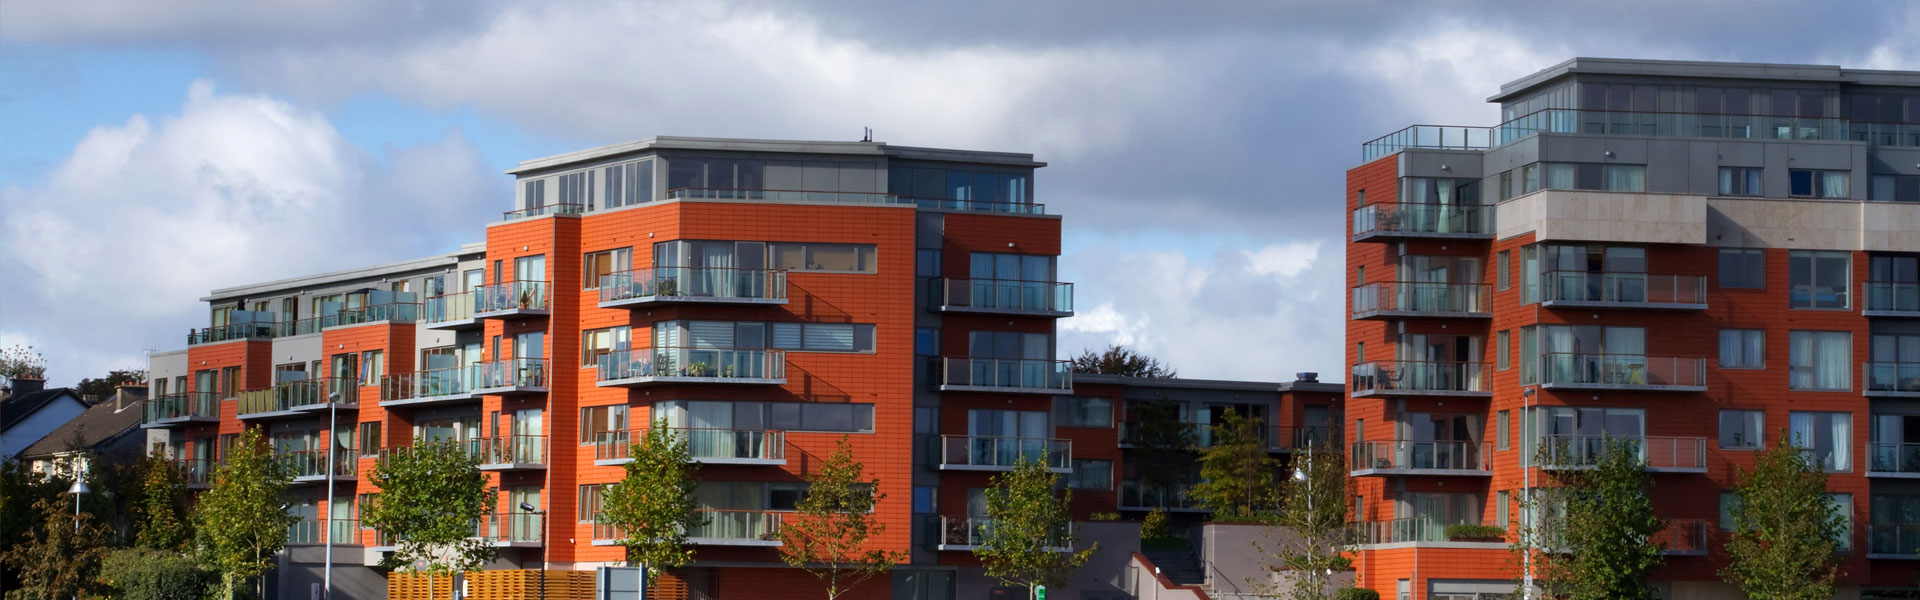 professional Commercial property management in Ballyfore